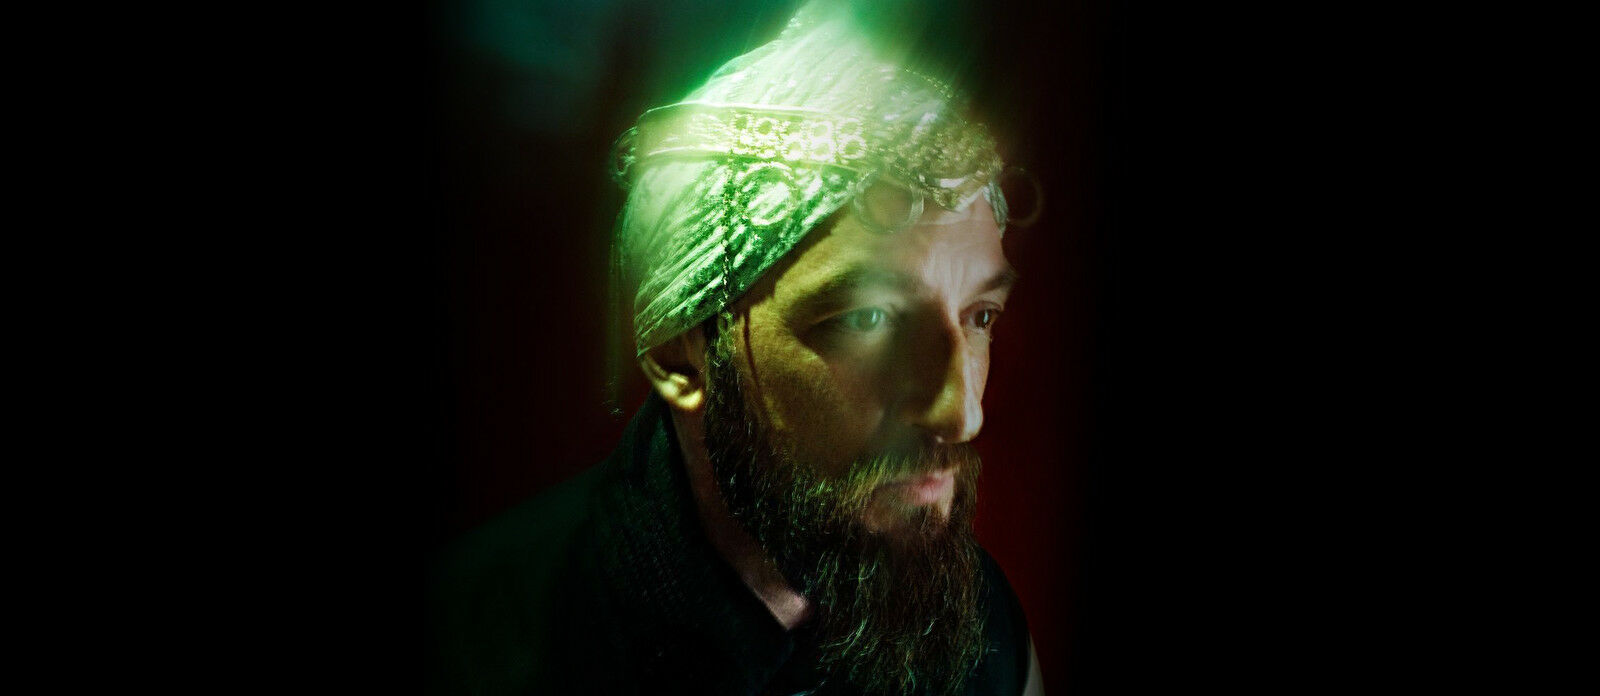 Damian Lazarus, Behrouz and More Tickets (21+ Event)